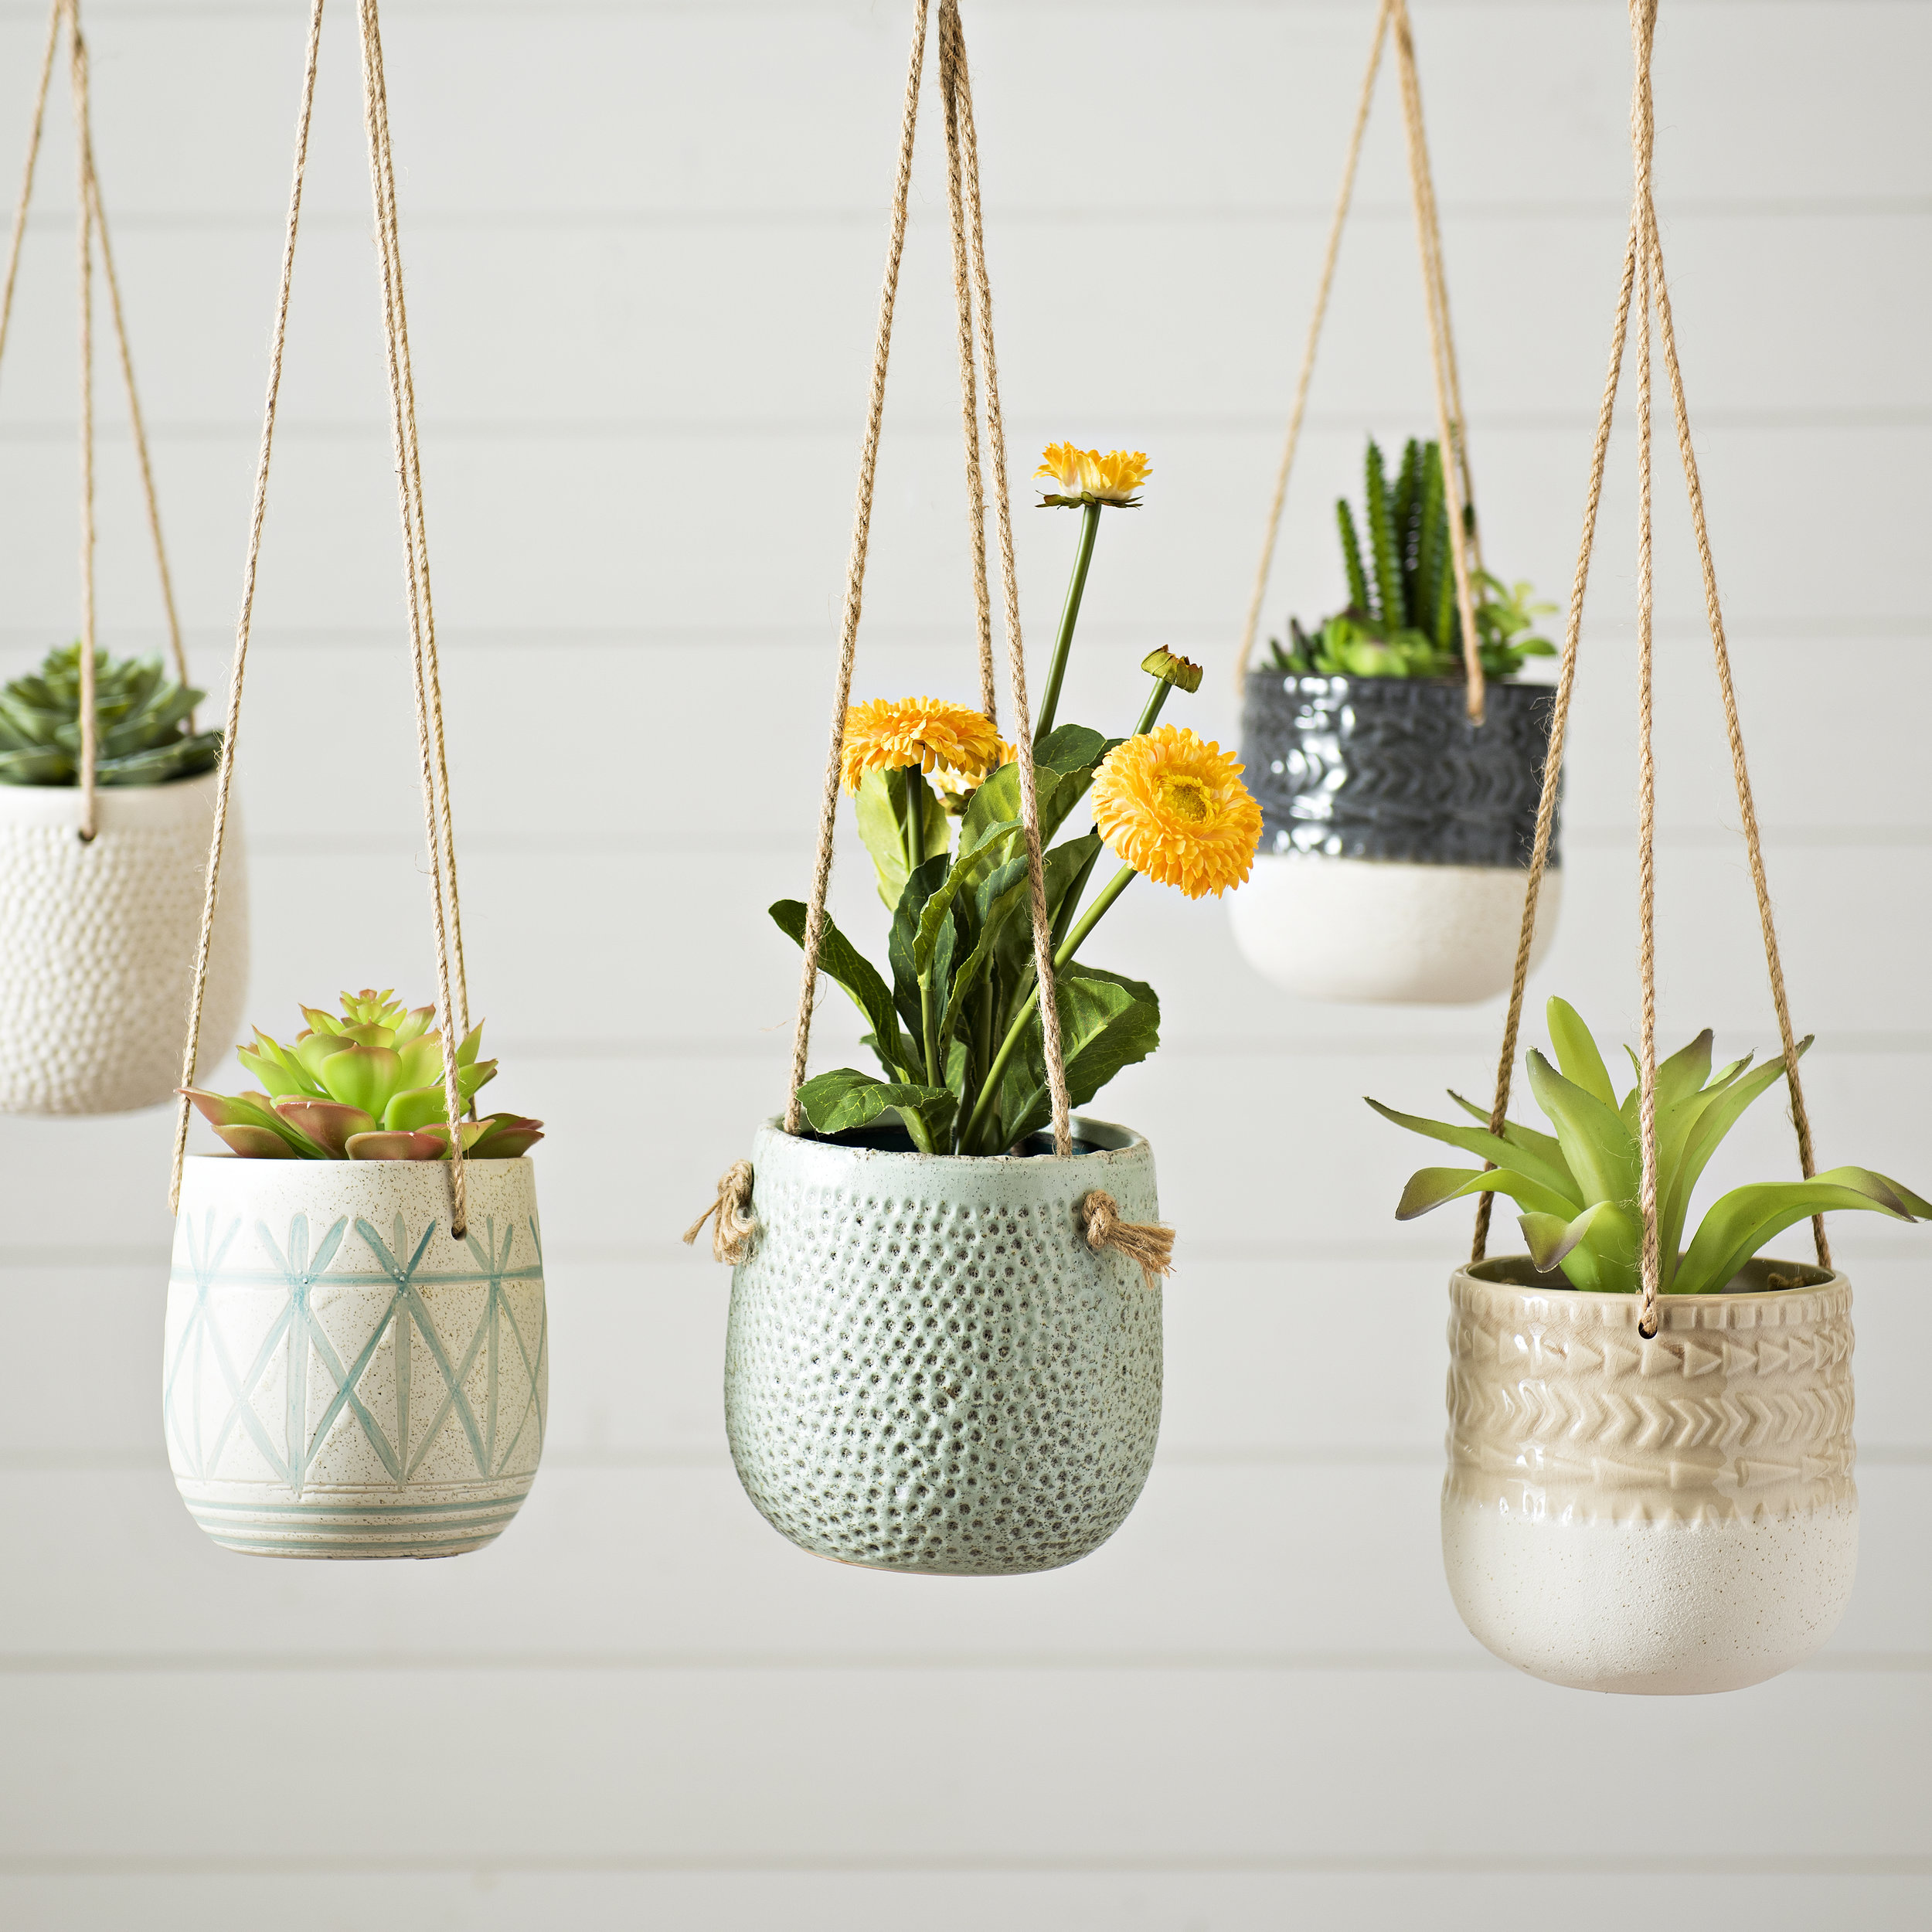 Kirkland's - Tips & Tricks | How To Use Hanging Planters